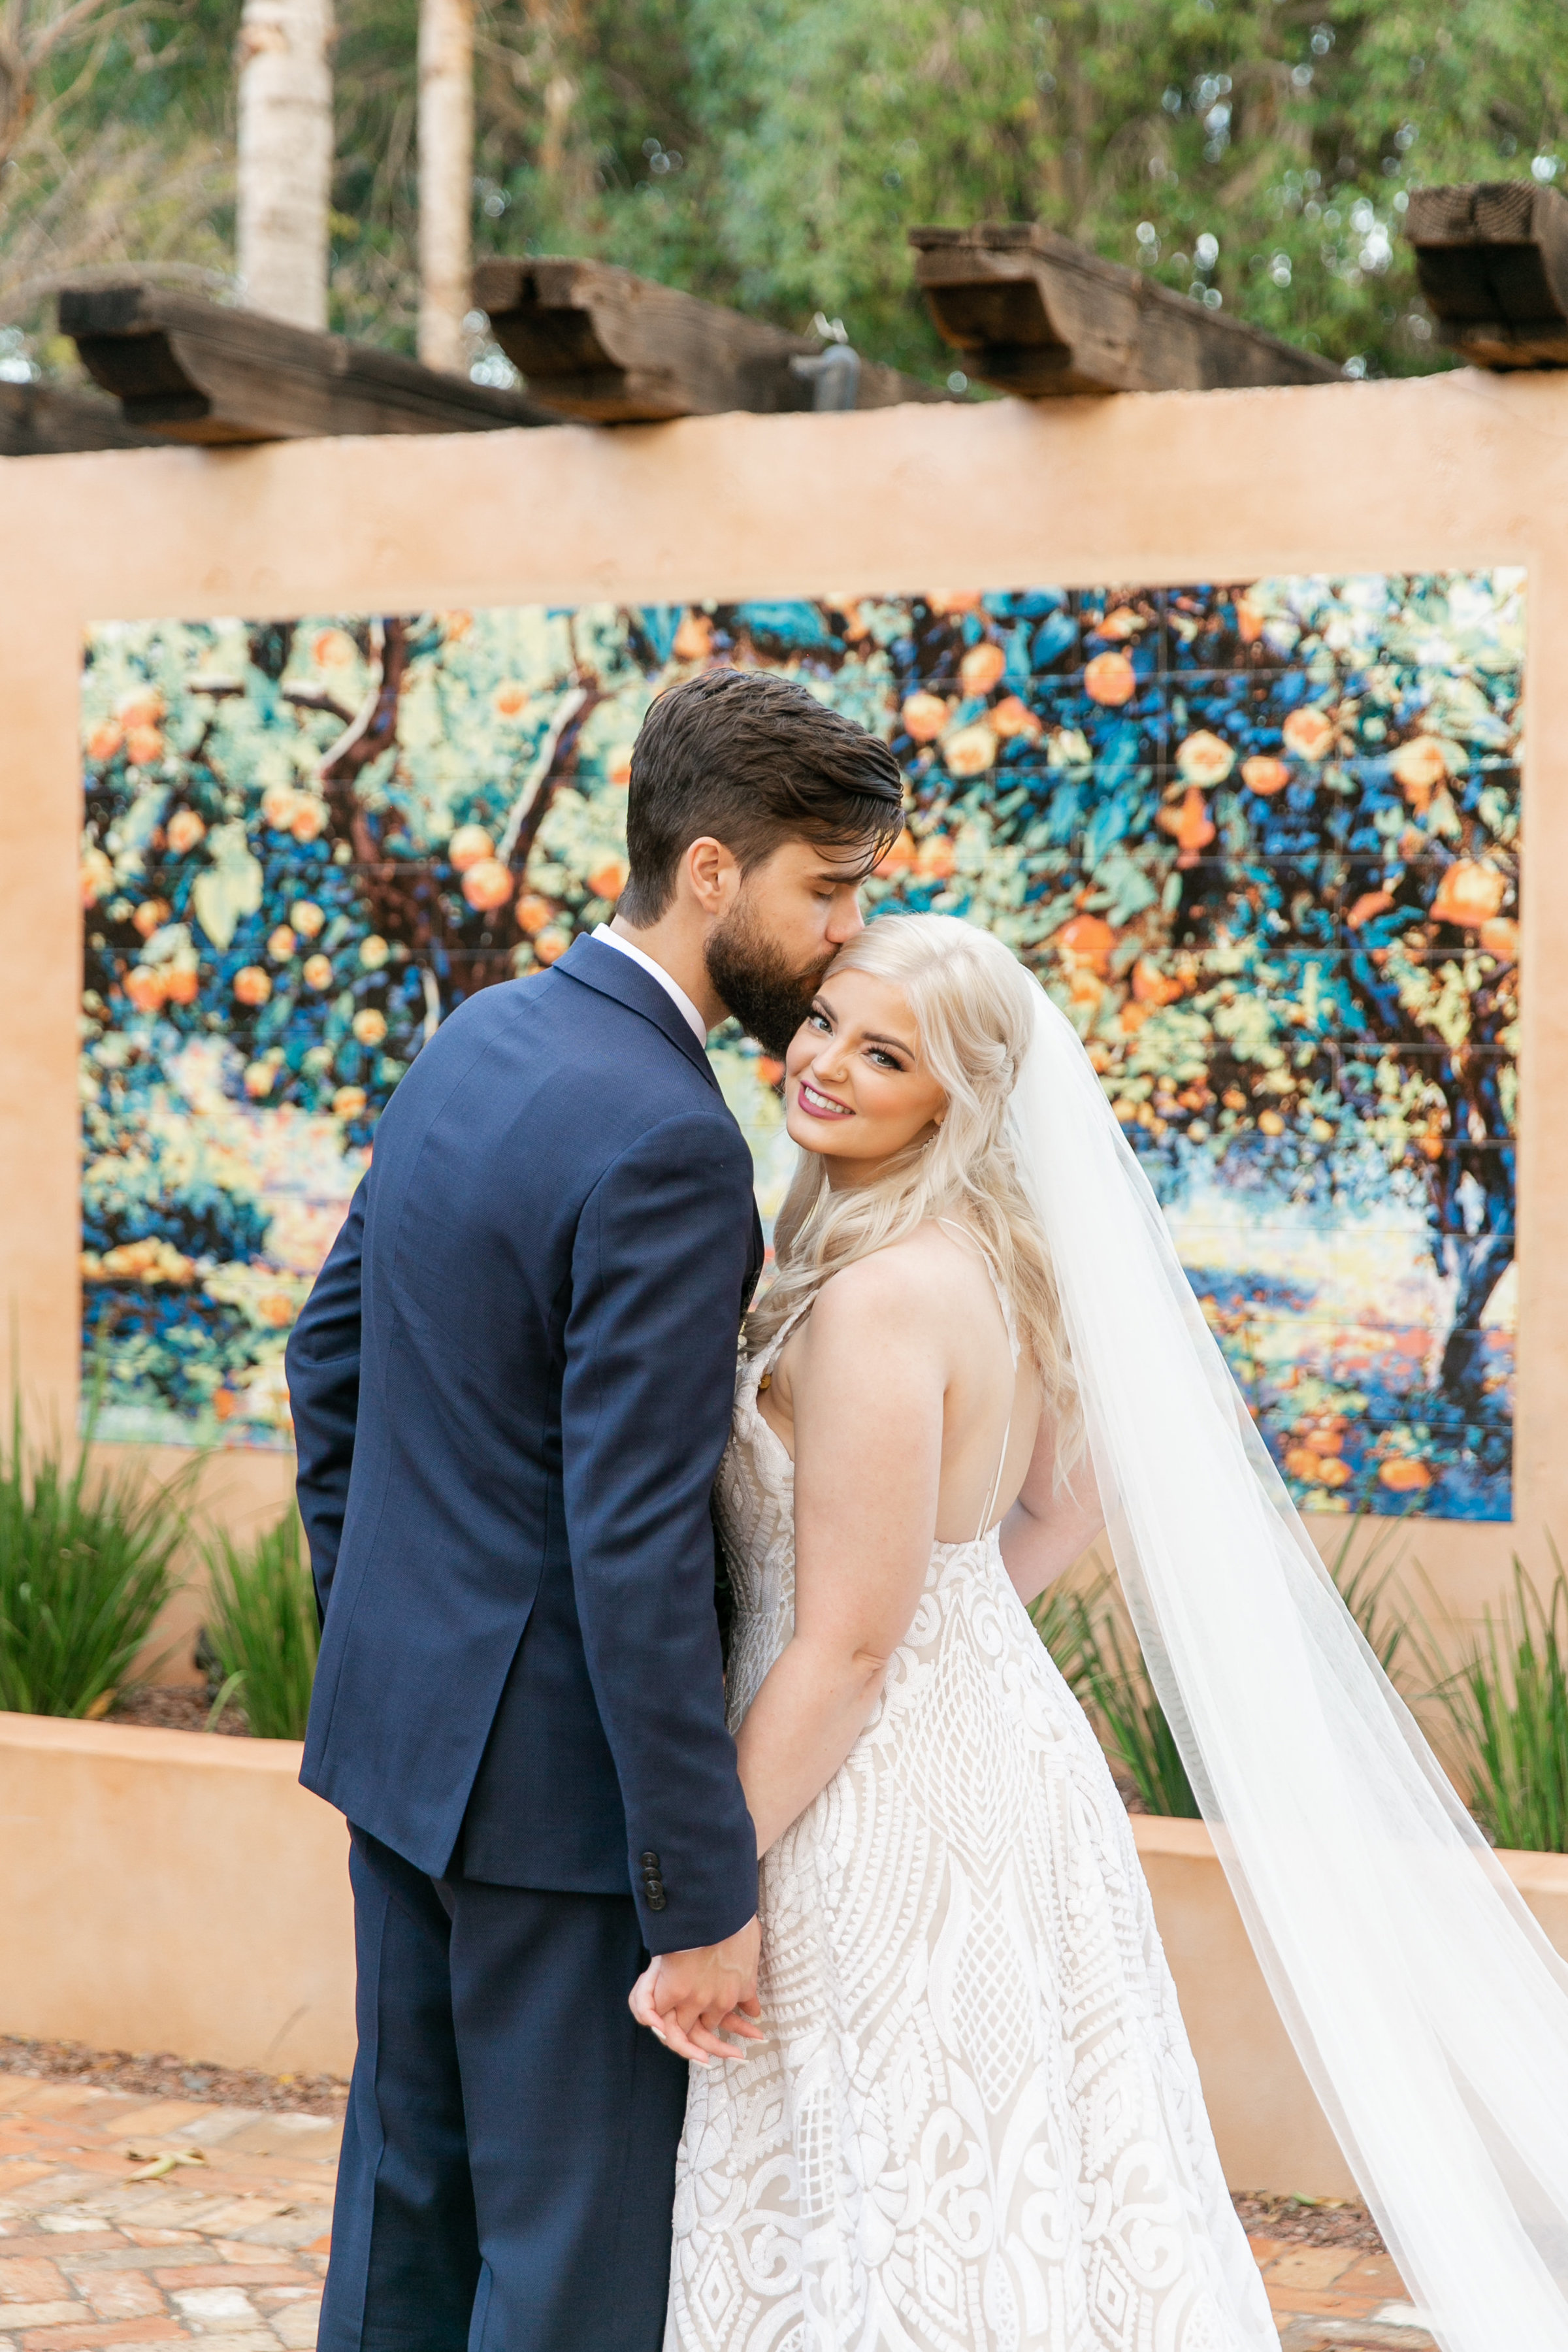 Karlie Colleen Photography - The Royal Palms Wedding - Some Like It Classic - Alex & Sam-524